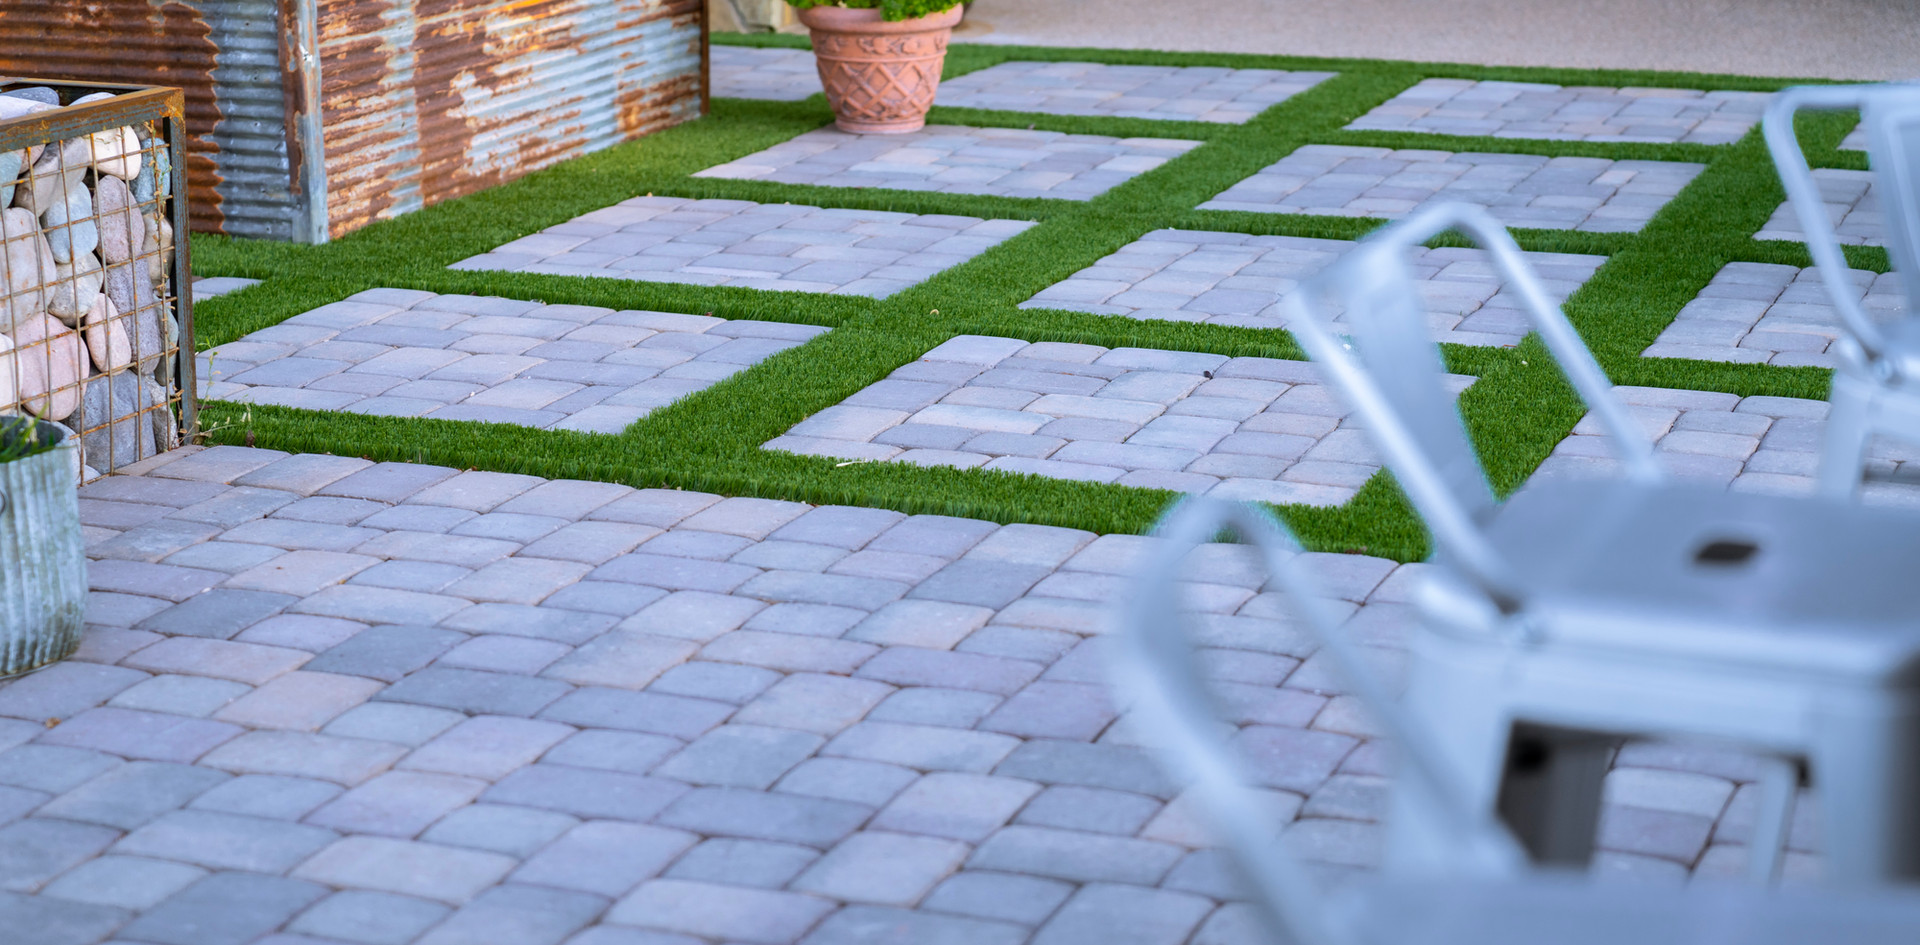 Pavers and synthetic grass